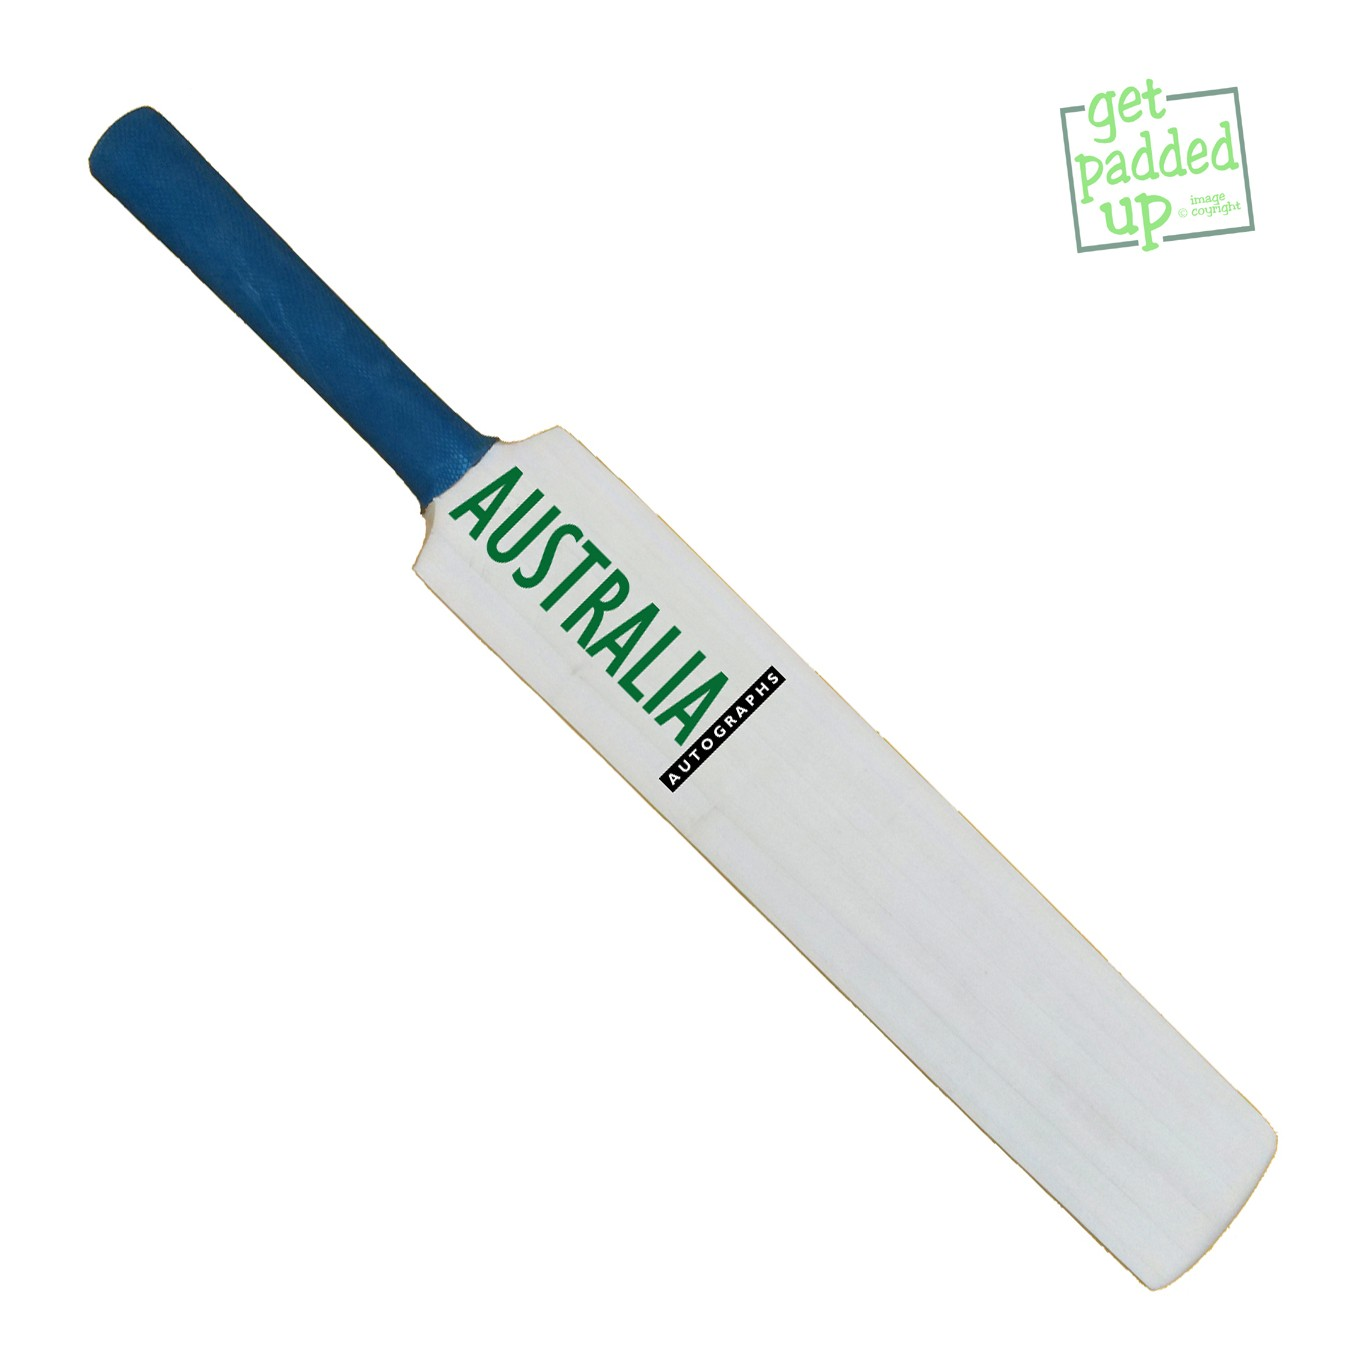 Australia Autograph Miniature Cricket Bat